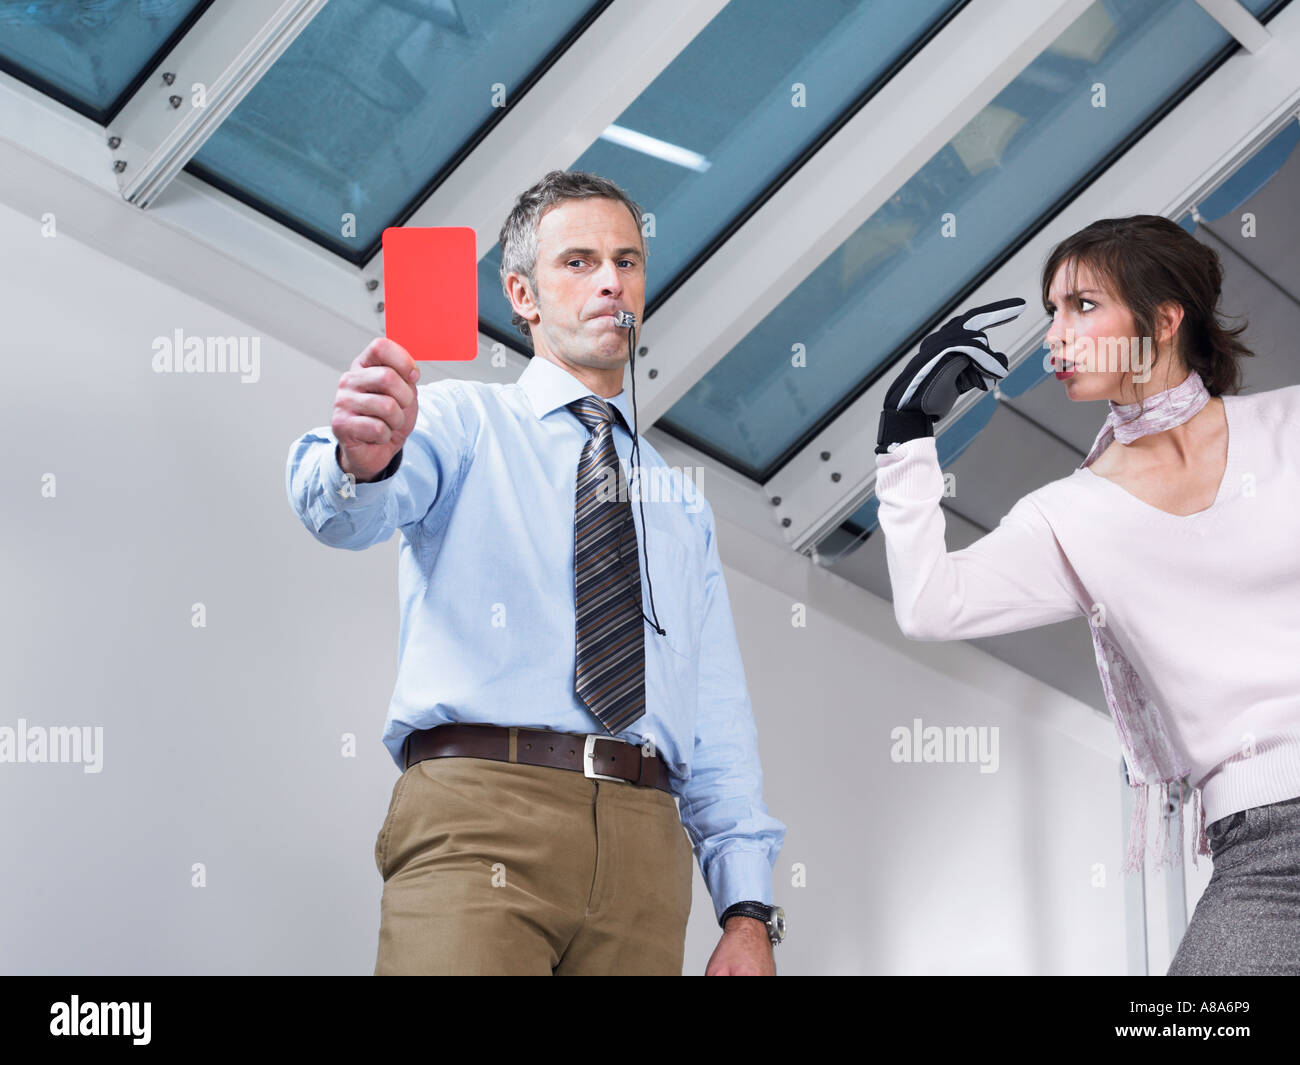 Manager with a red card - Stock Image